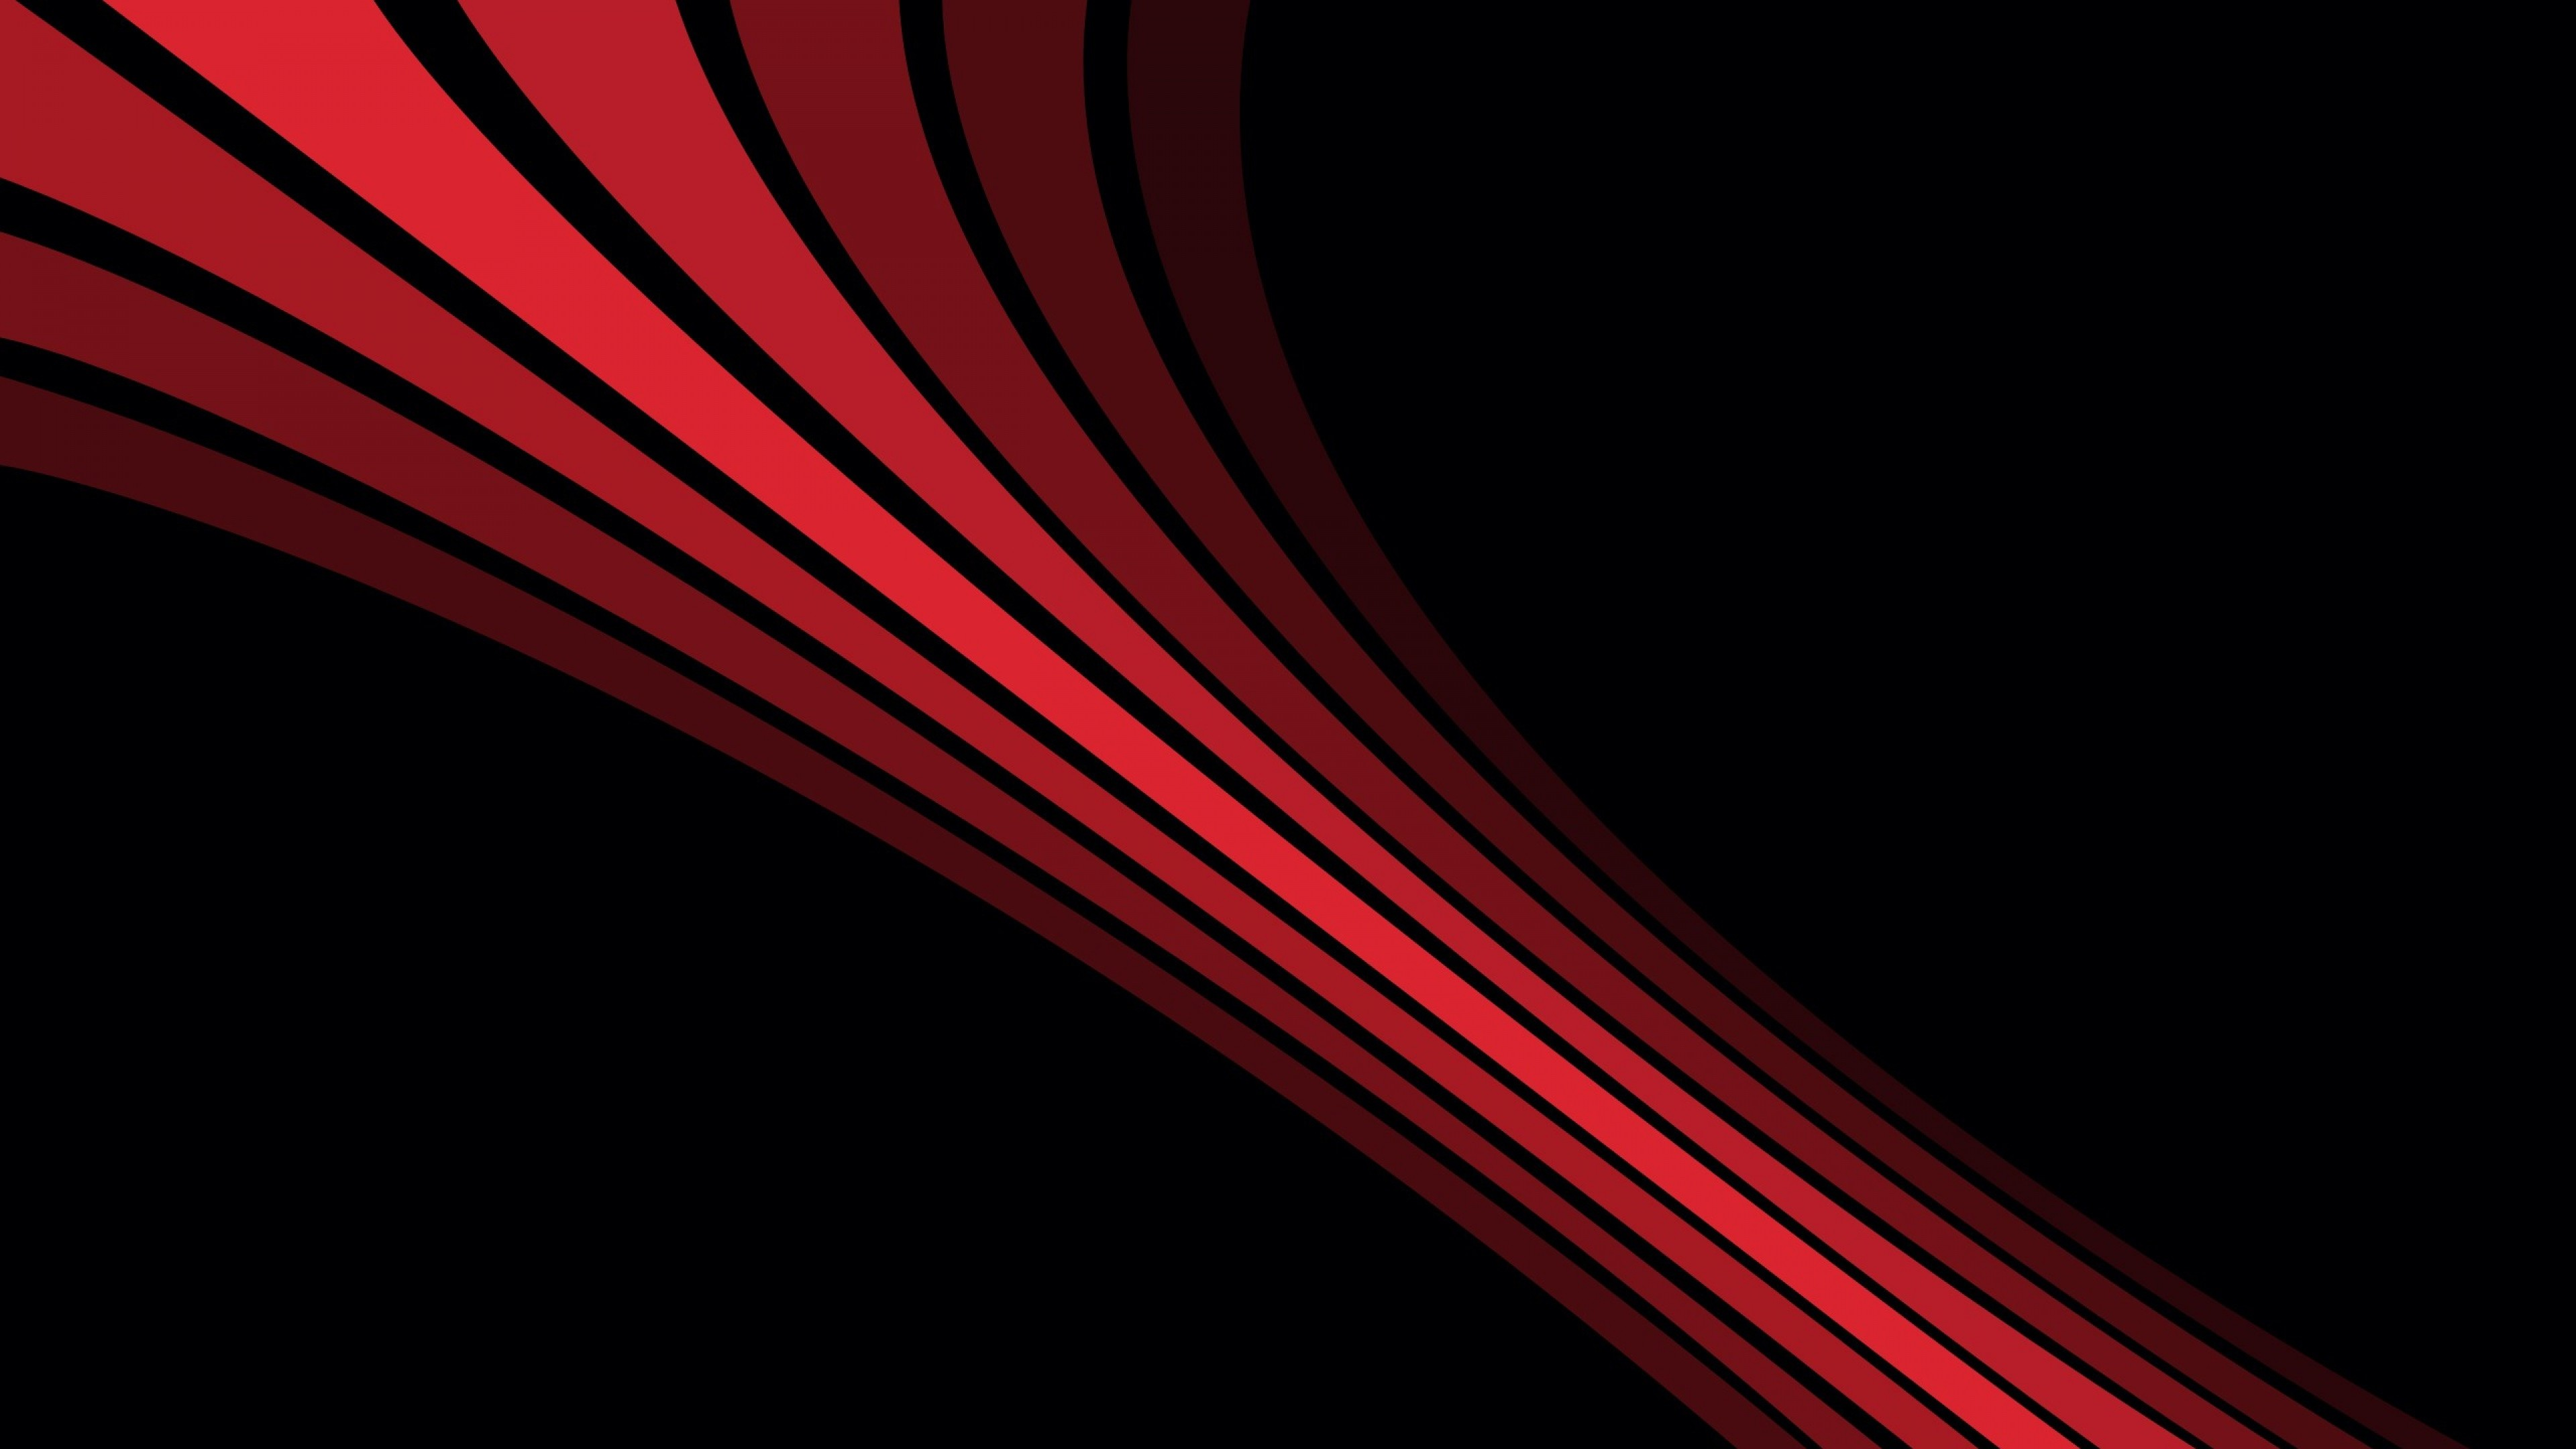 Shadow, Stripes, Shape, Black, Red Wallpaper, Background 4K .